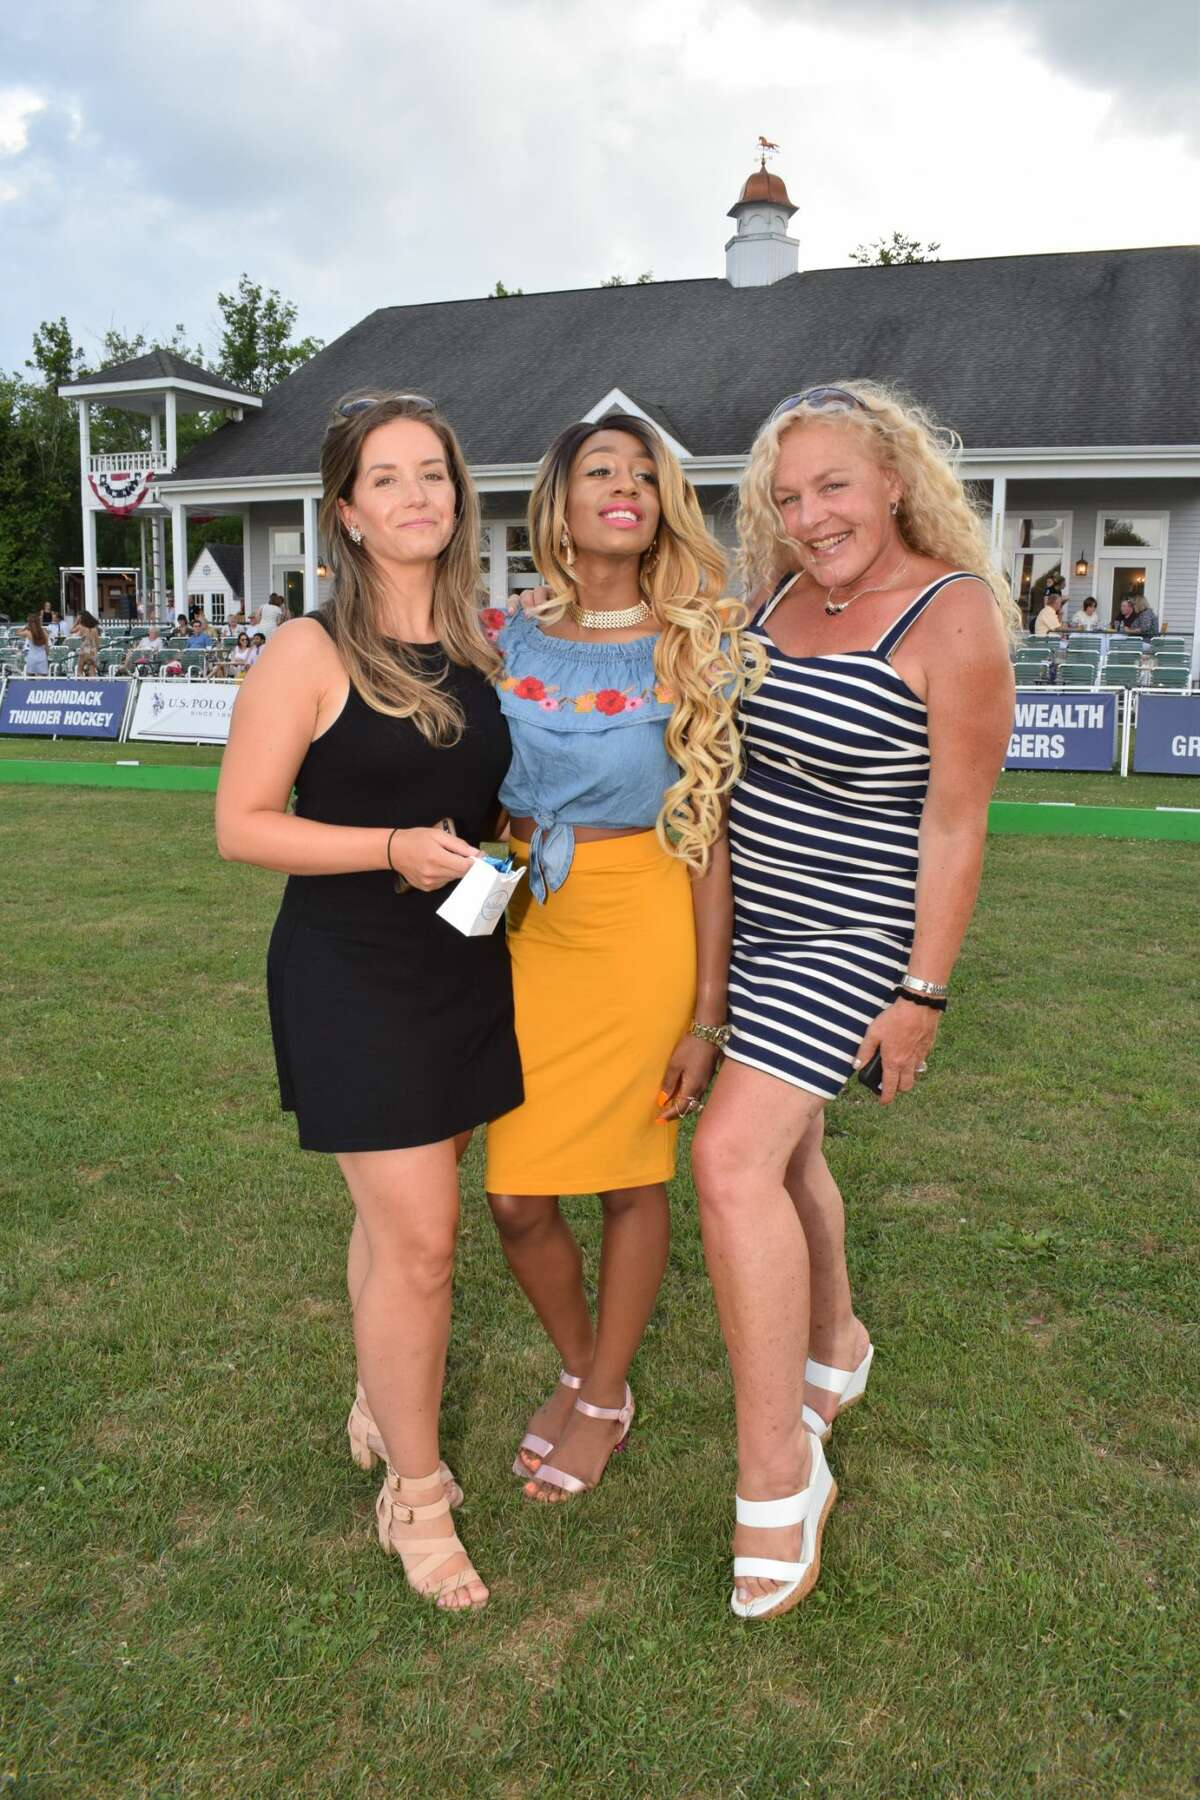 Were you Seen at The Veuve Clicquot Challenge Finals at Saratoga Polo Association on July 22, 2018?